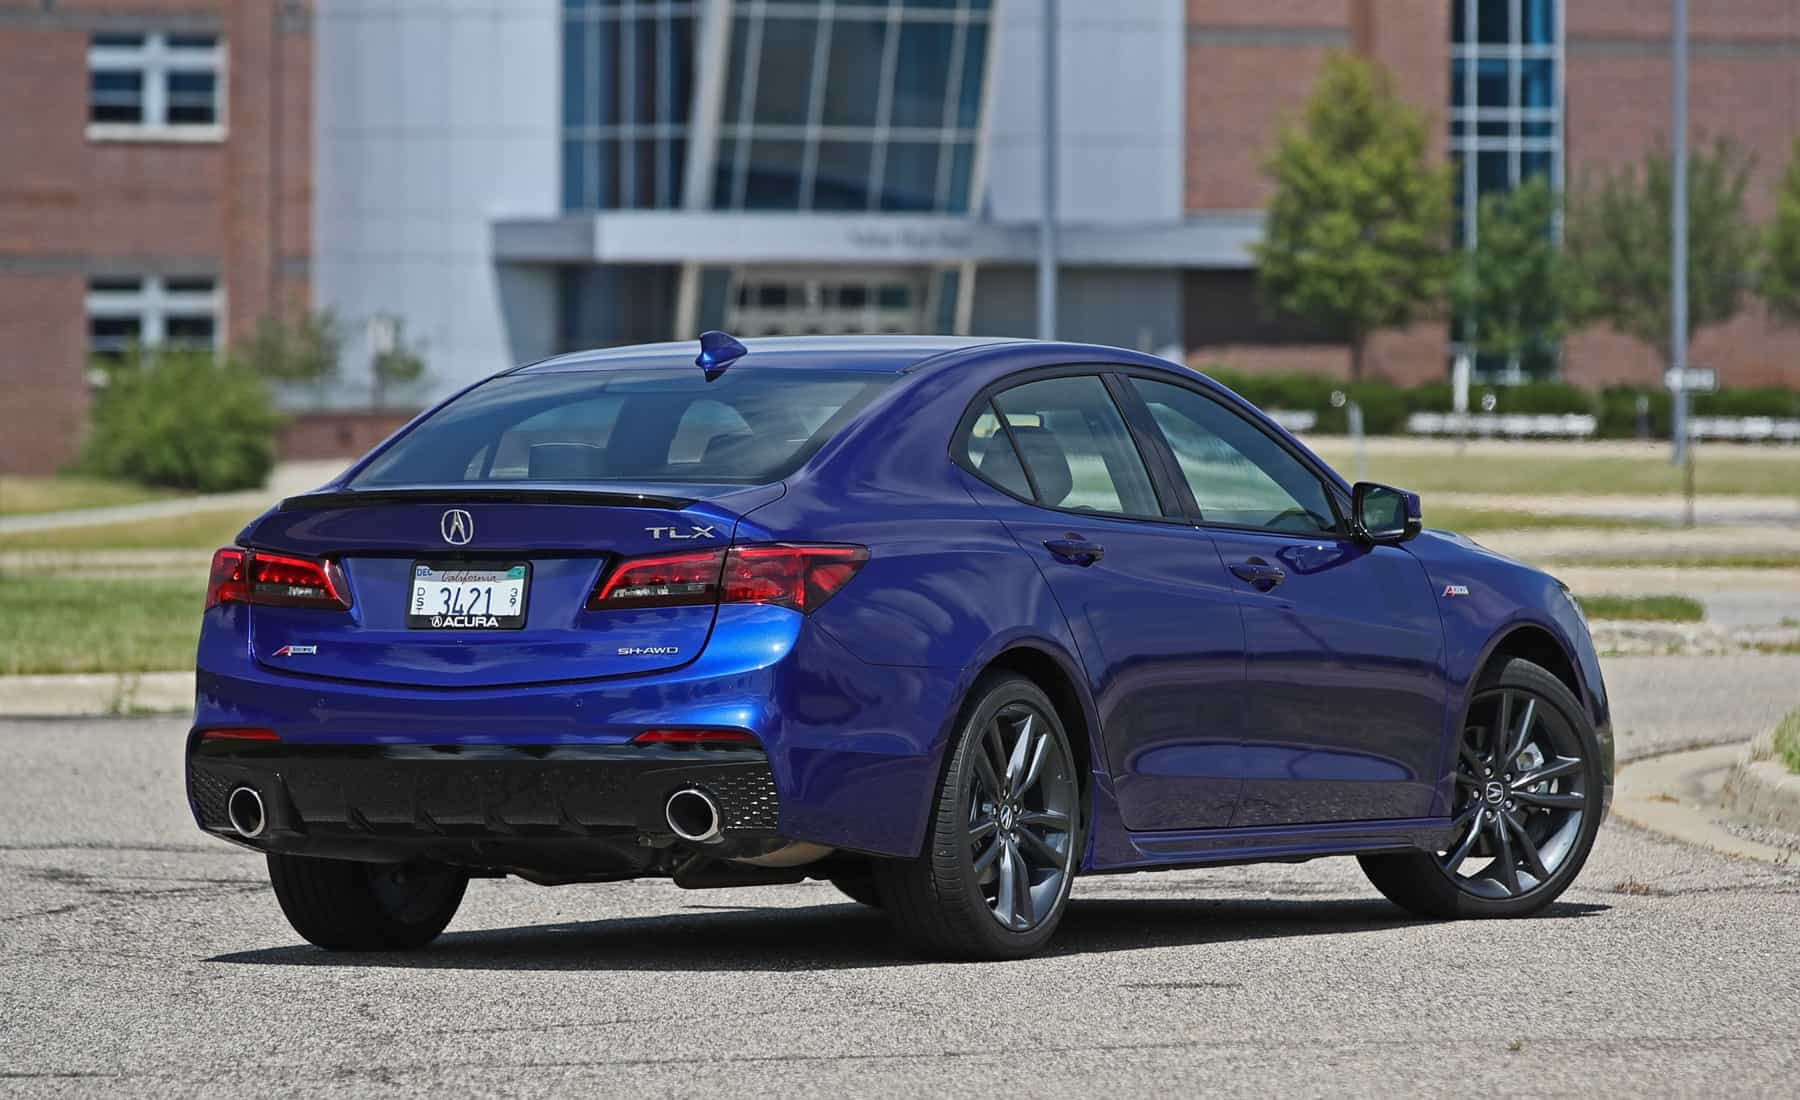 2018 Acura TLX Exterior Rear (Photo 4 of 46)